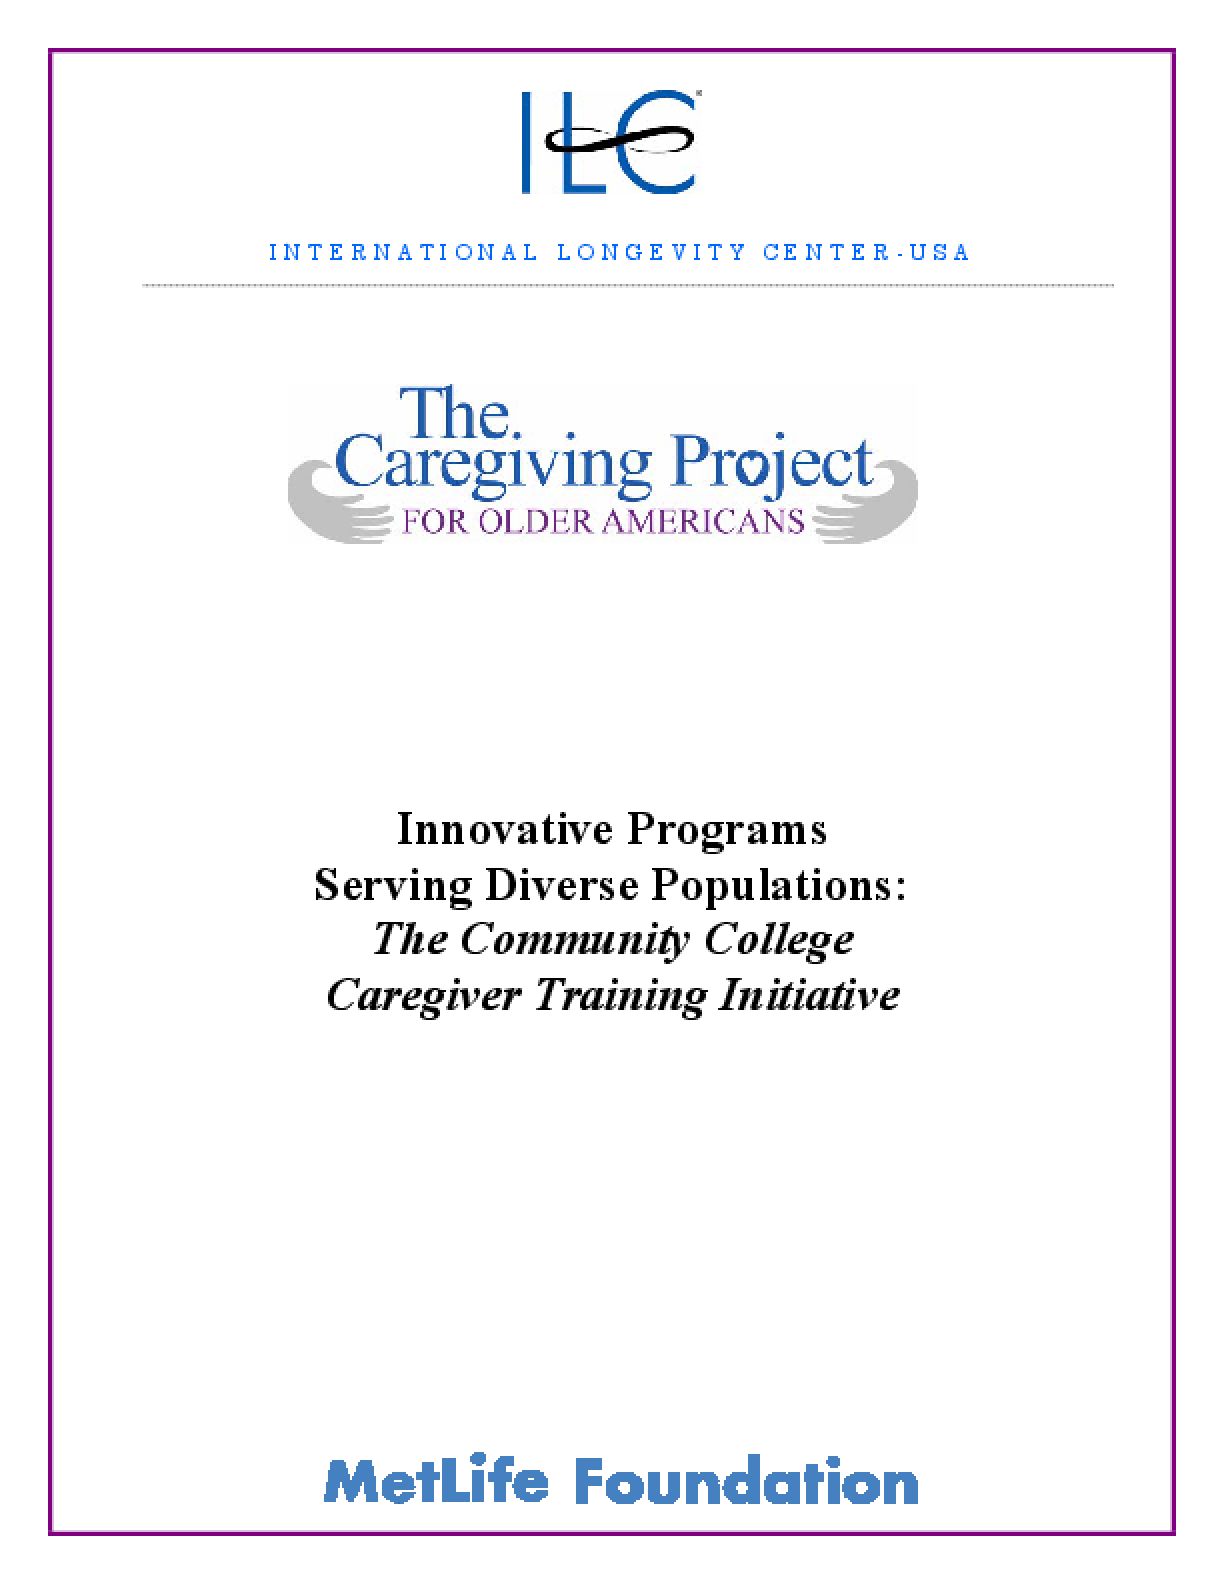 Innovative Programs Serving Diverse Populations: The Community College Caregiver Training Initiative